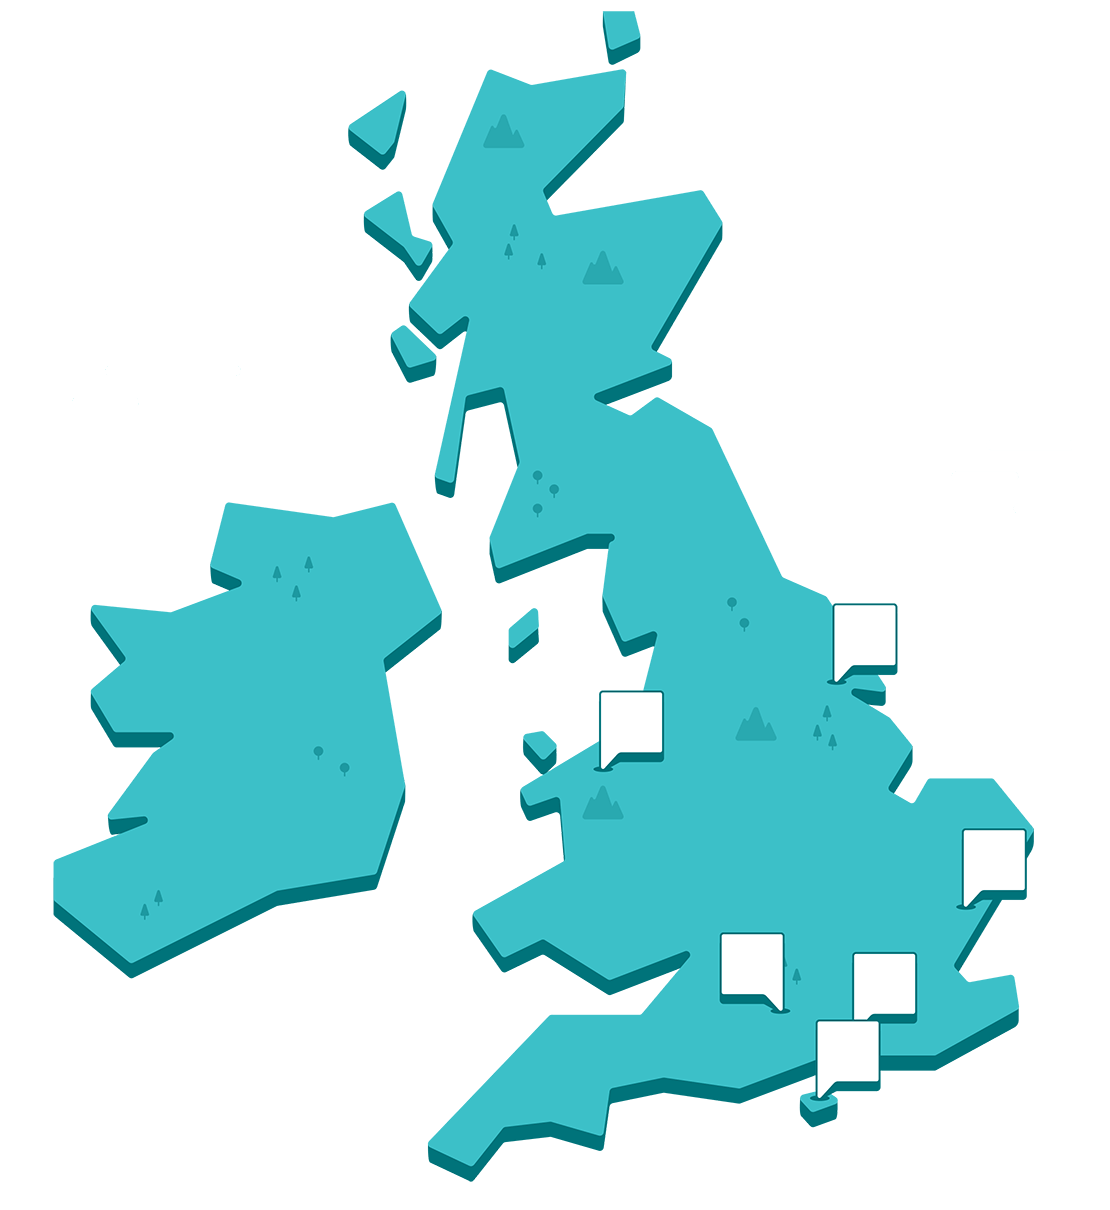 Map of the UK showing our park locations